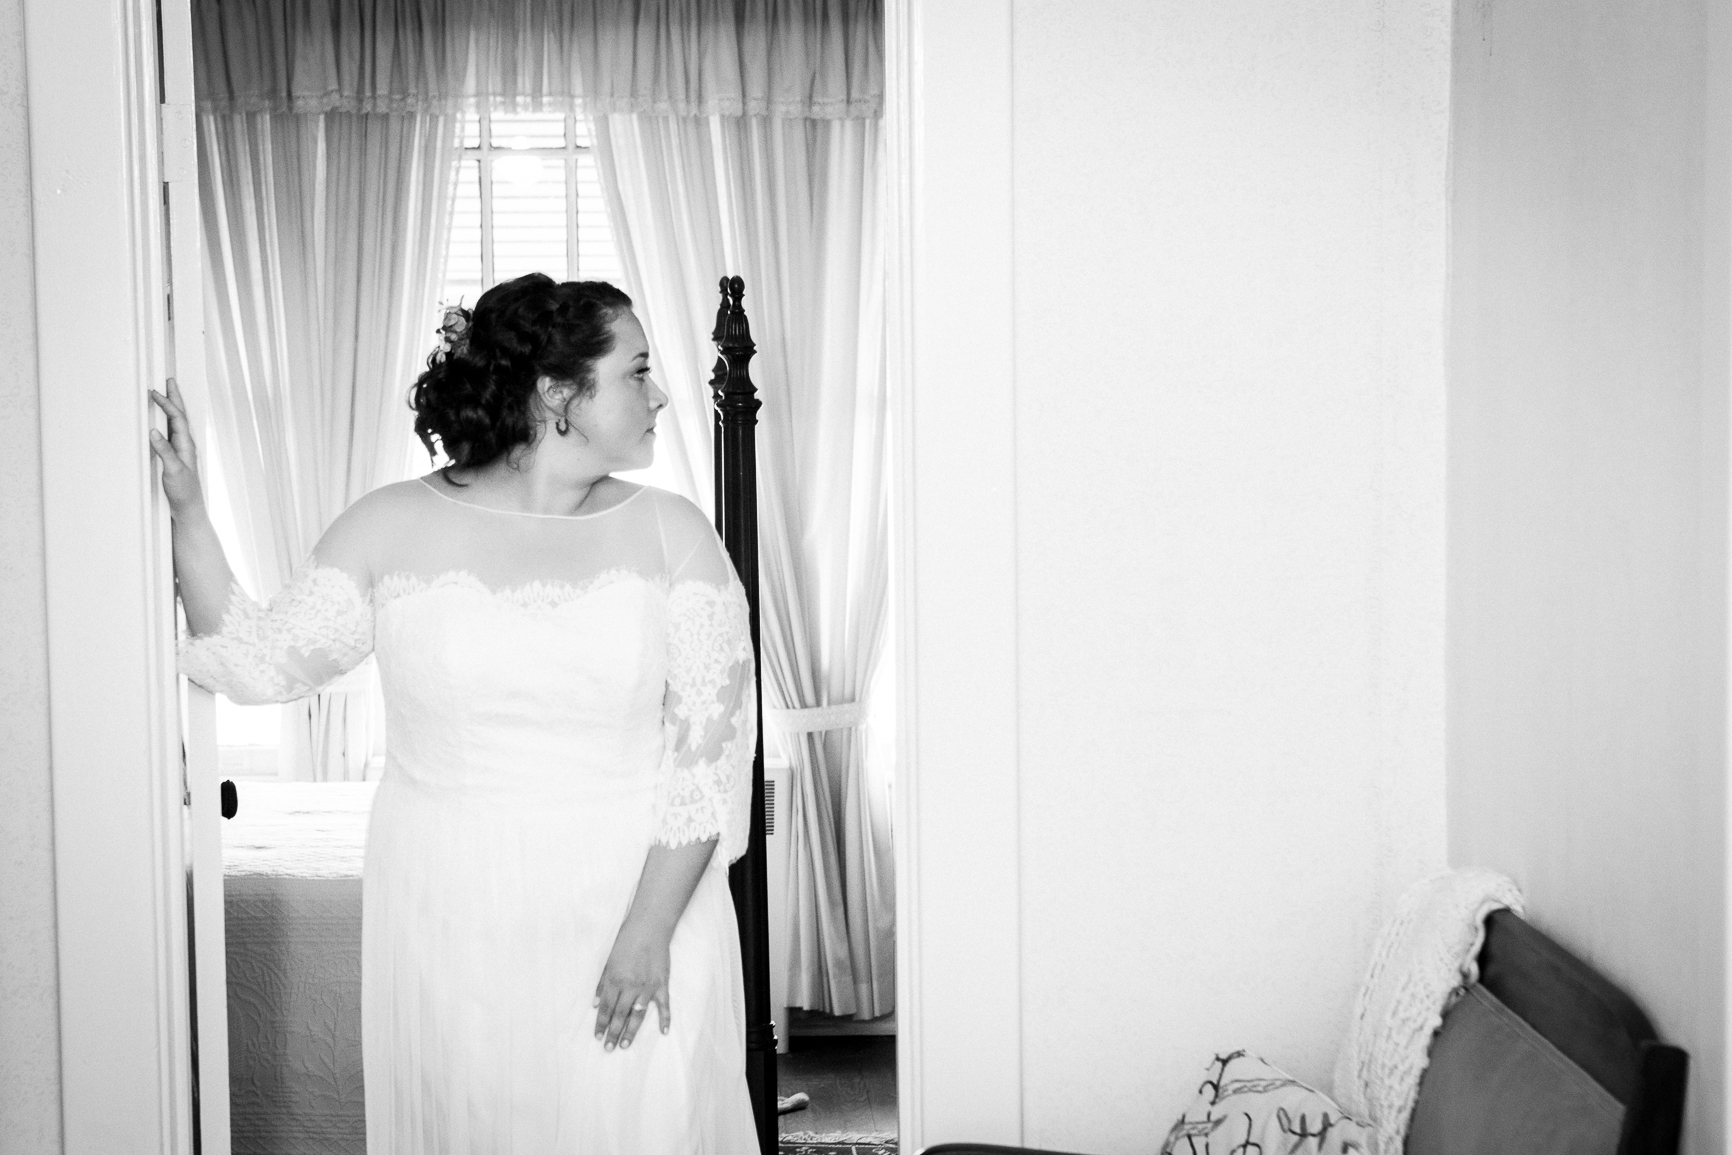 101 studio llc -Raleigh bride portrait 4.jpg